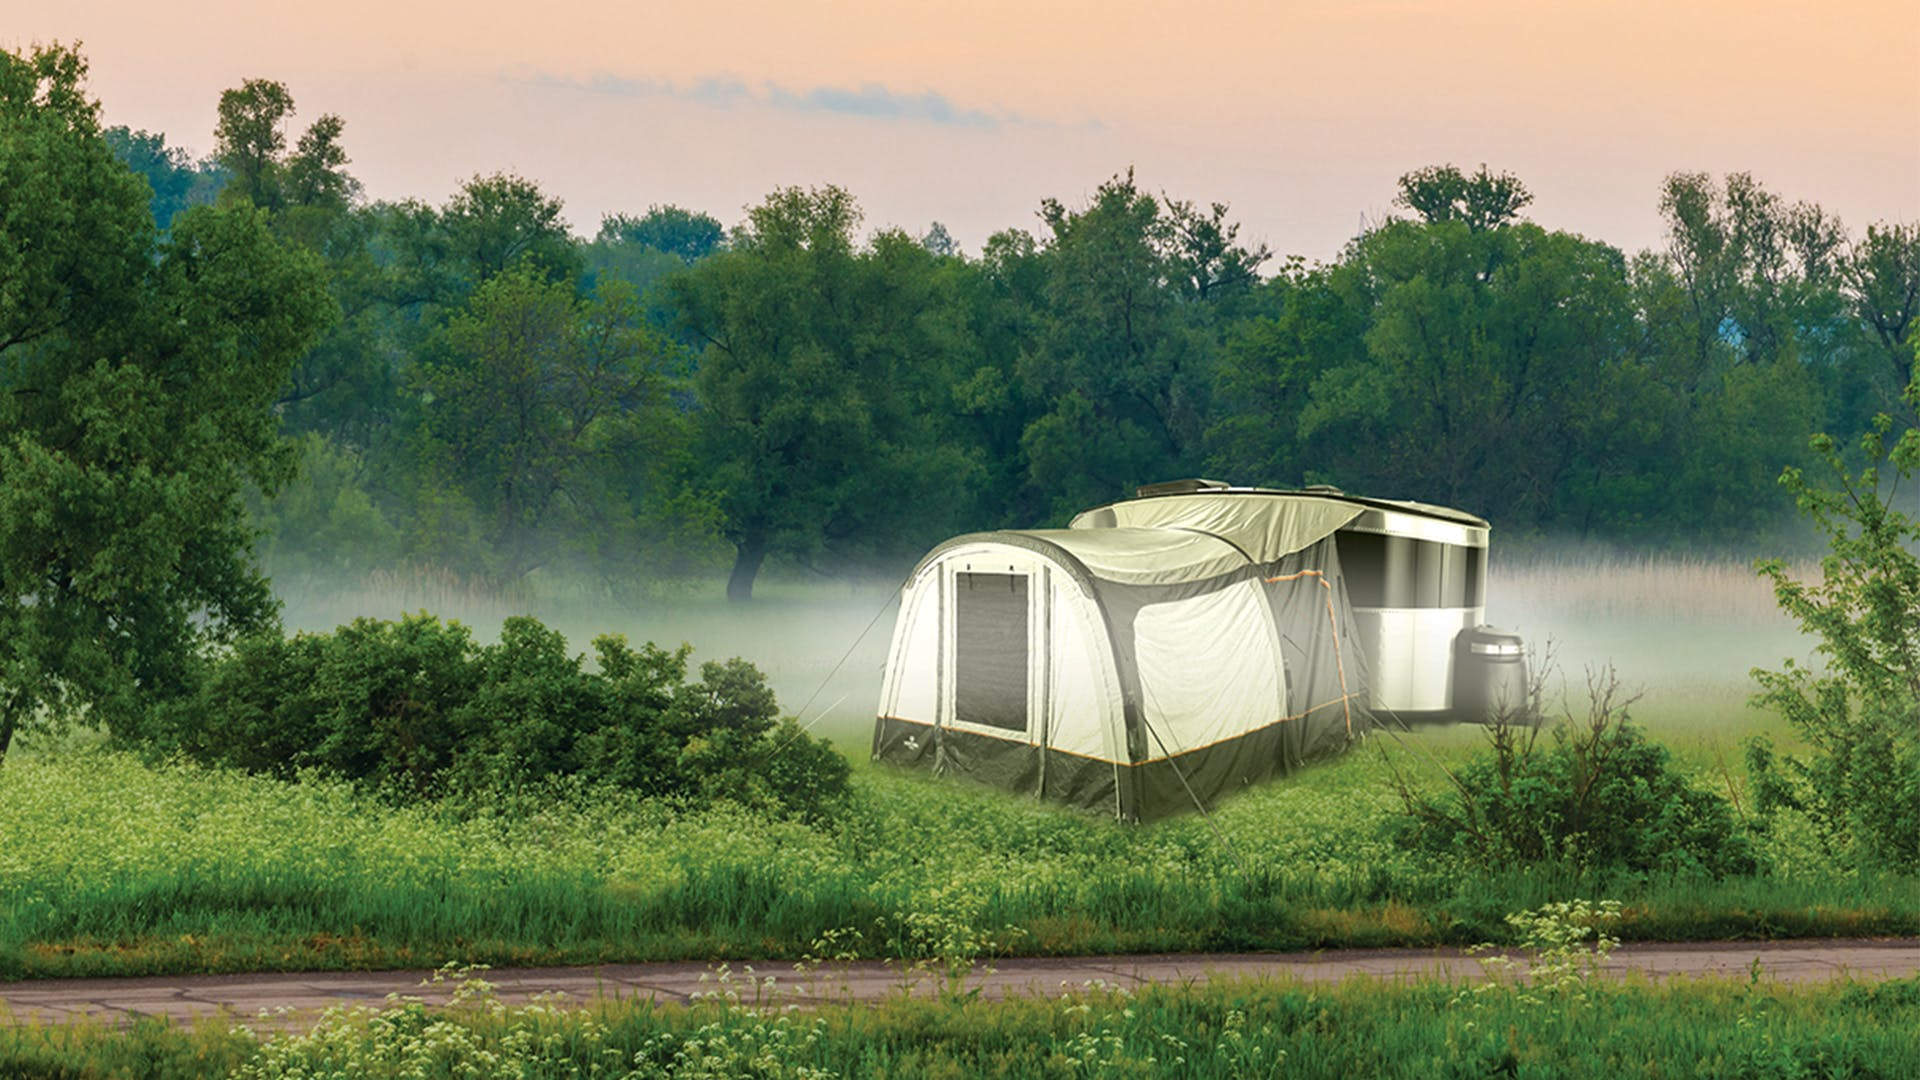 Airstream-Basecamp-20-Tent-Attachment-AirTube-Structure